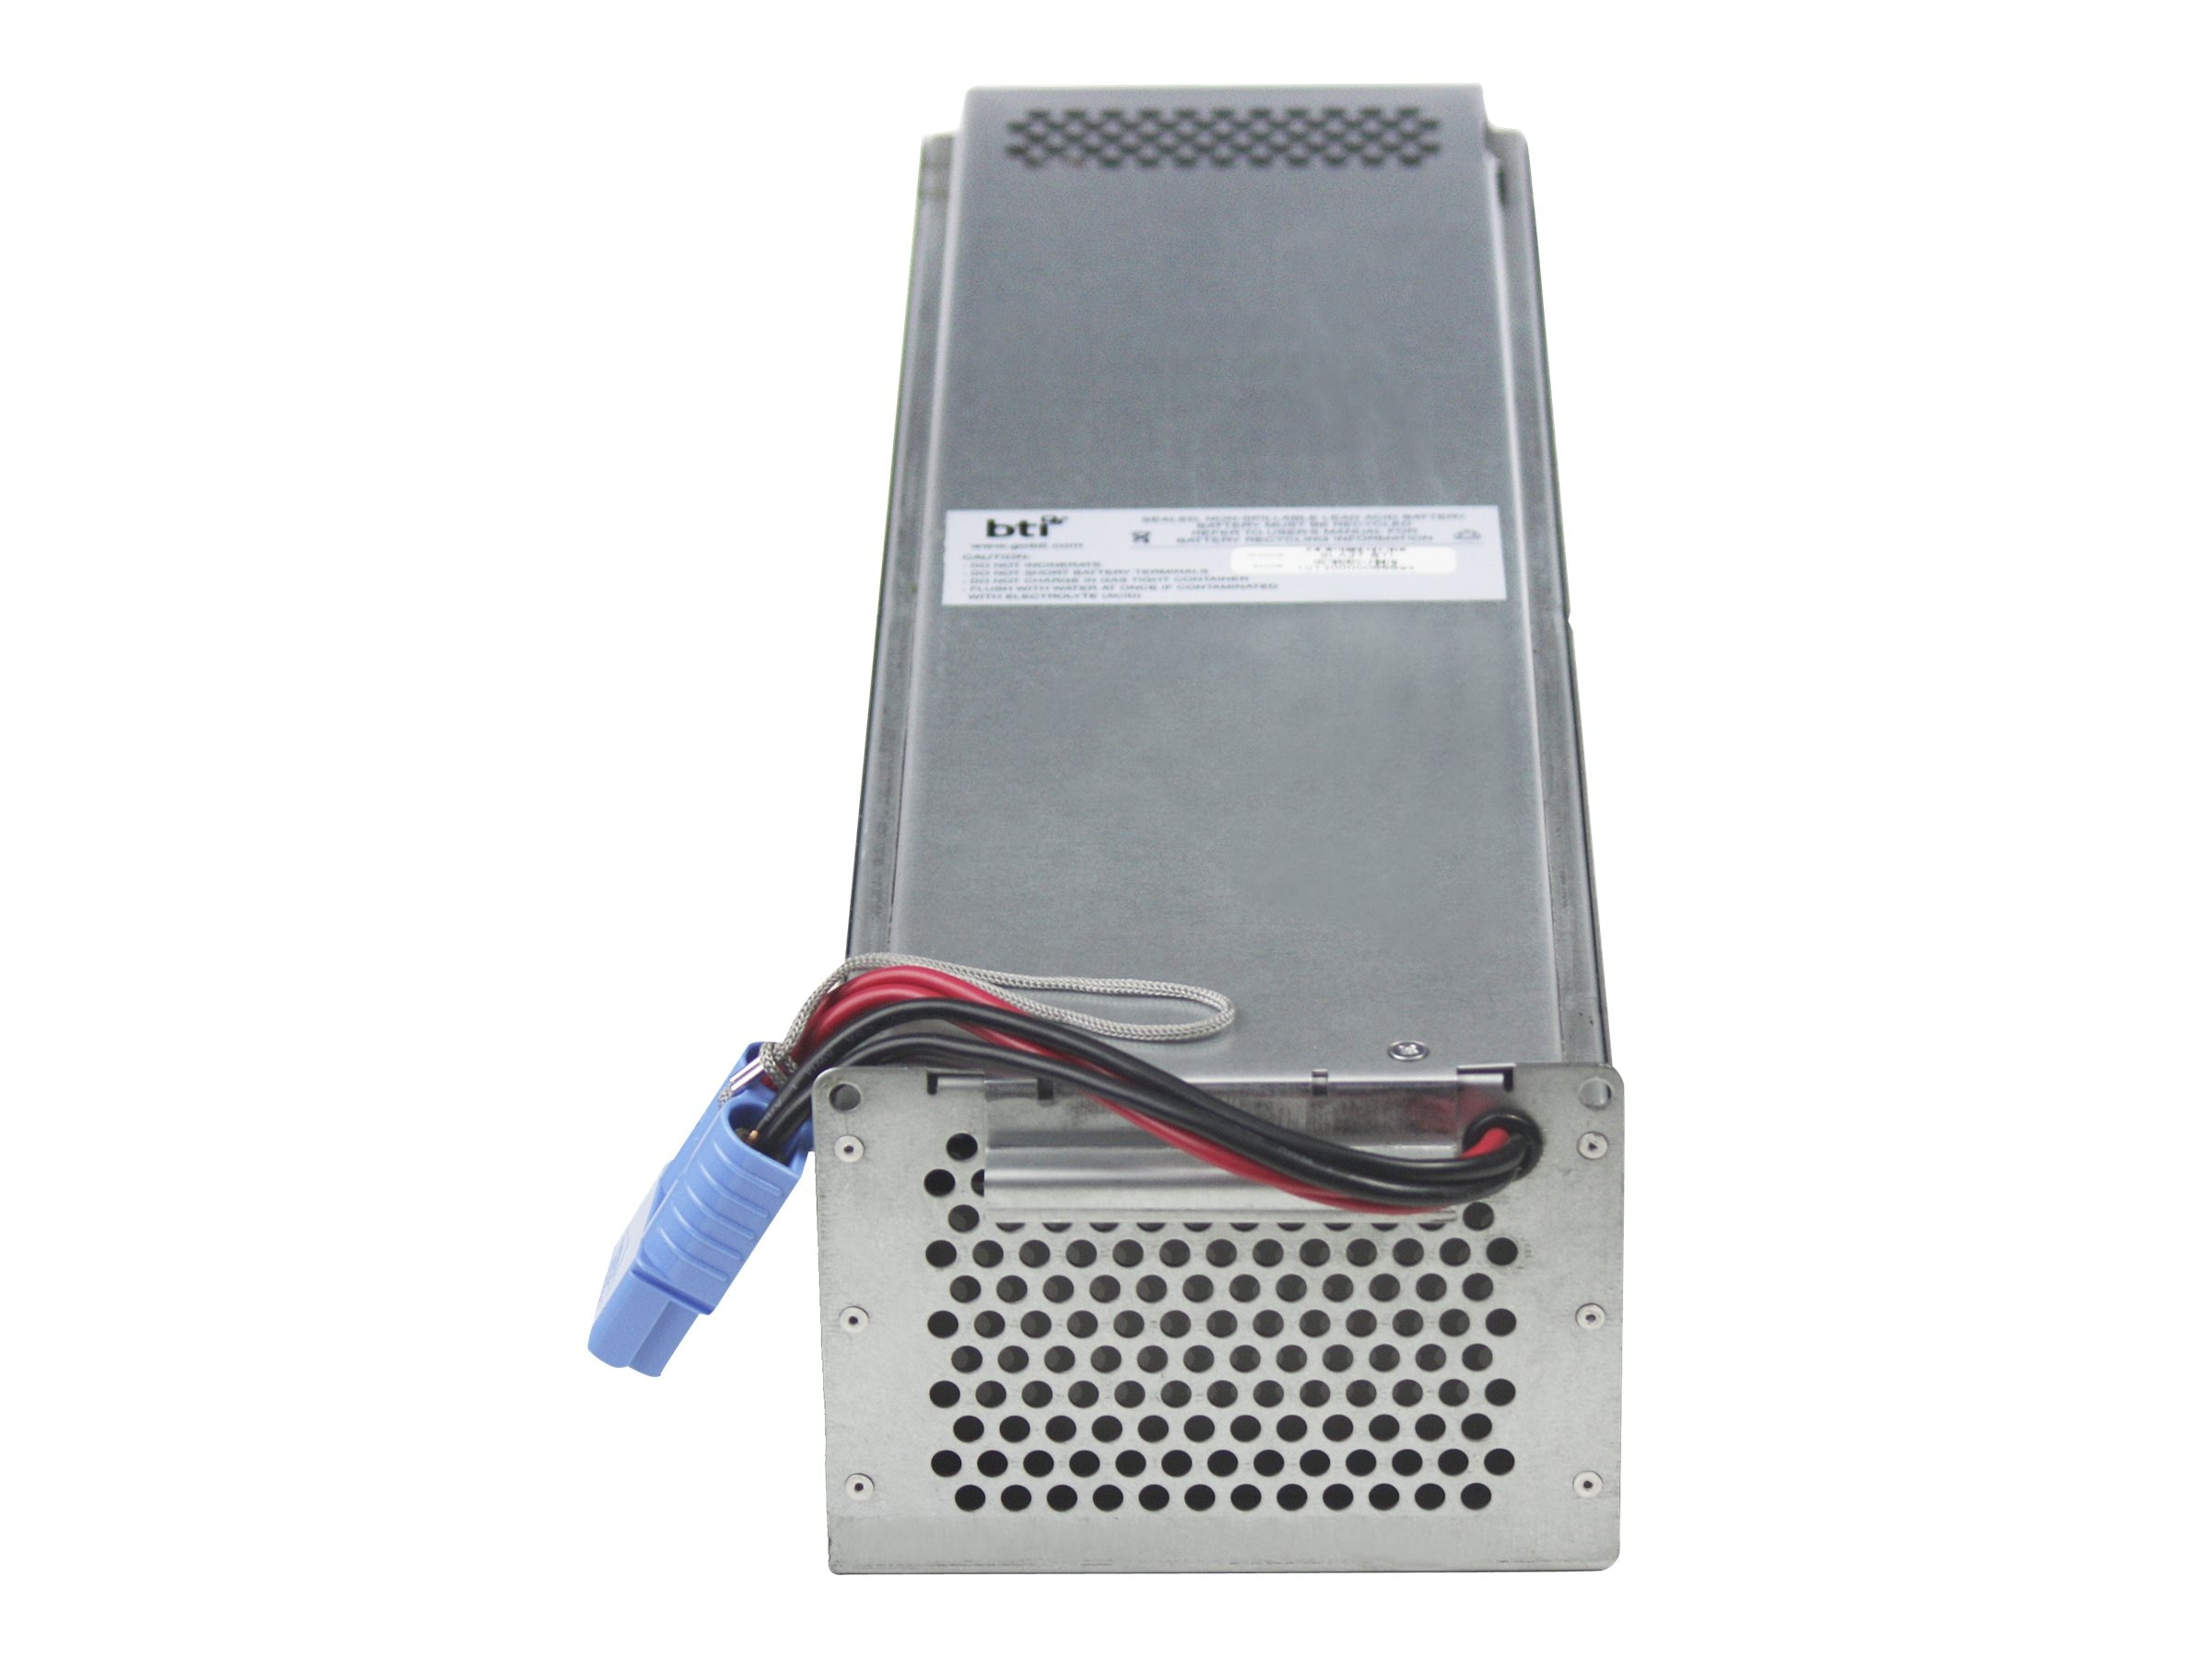 BTI Sealed Lead Acid 12V 9A 8-cell UPS Battery